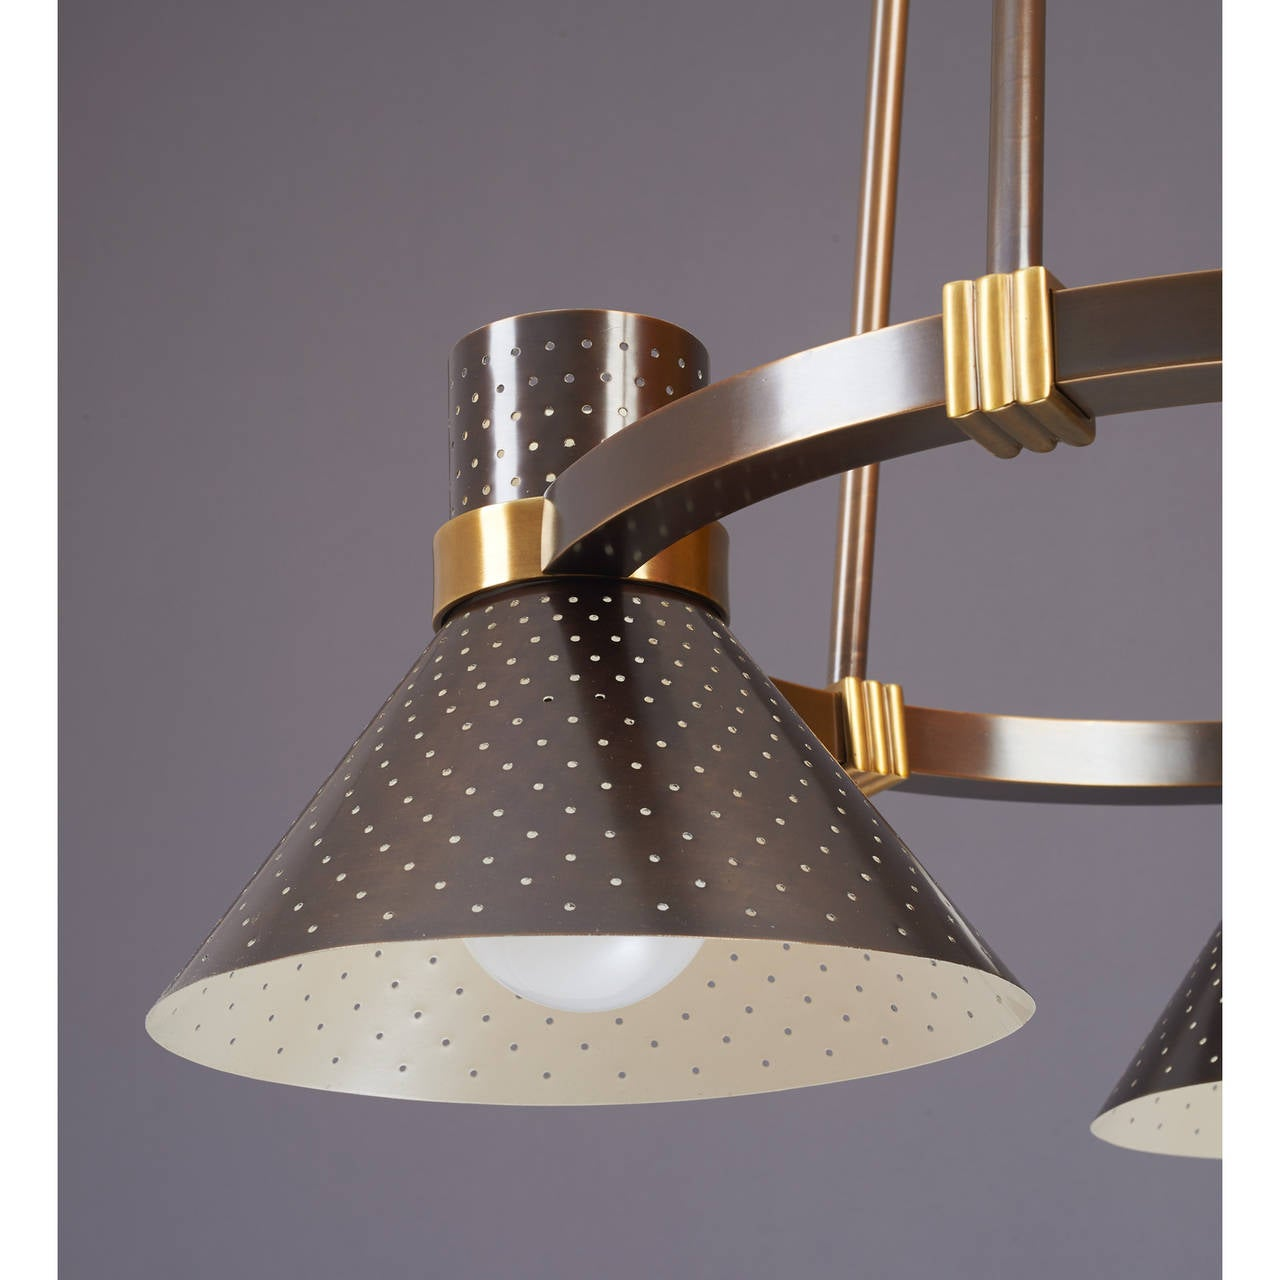 French Modernist Bronze Chandelier with Perforated Shades, France, 1950s For Sale